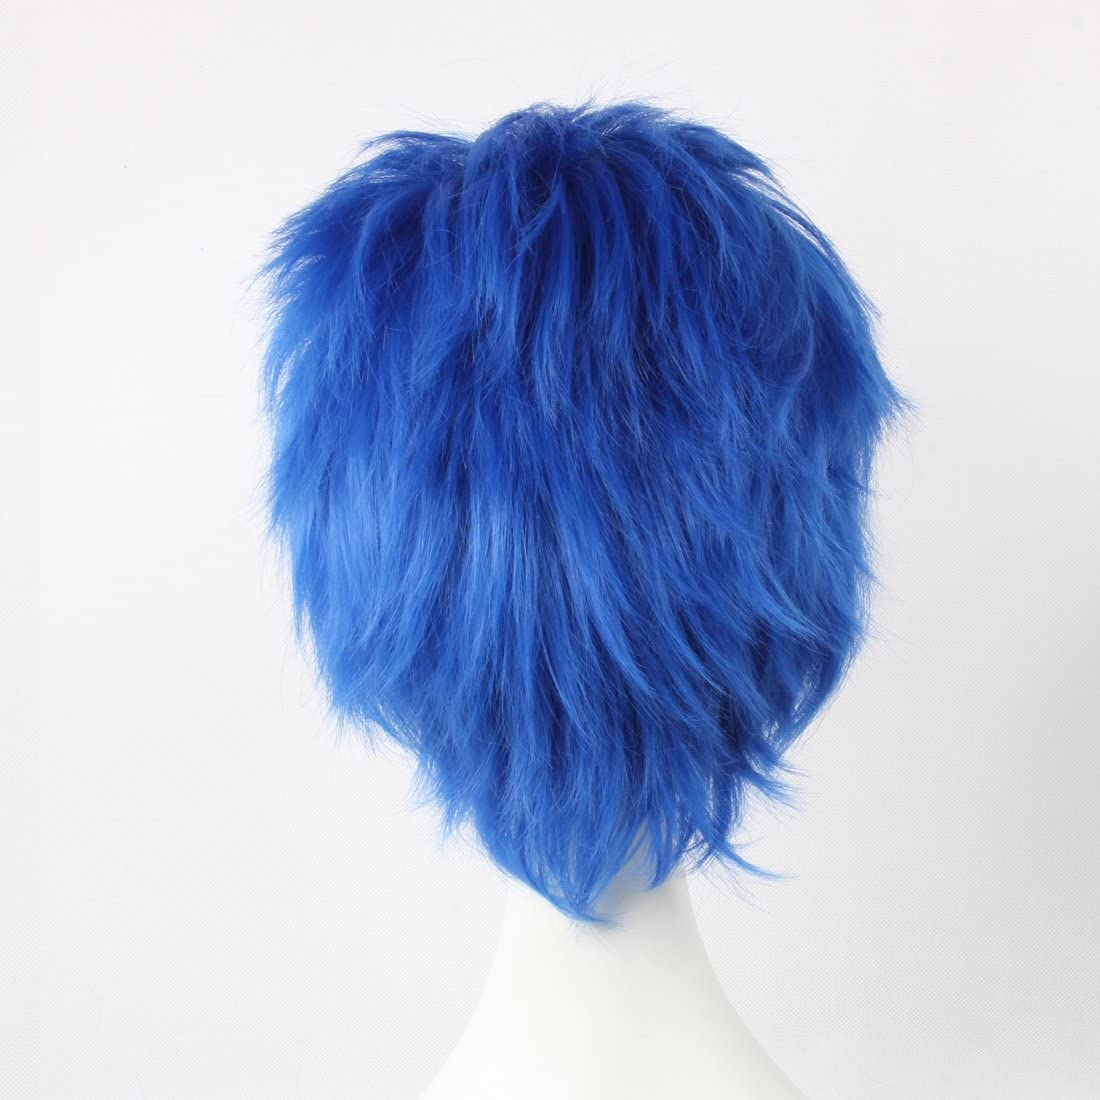 Perruque courte en couches HOOLAZA Vocaloid Kaito Fairy Tail Jellal Fernandes pour la f/ête dHalloween Perruques Cosplay